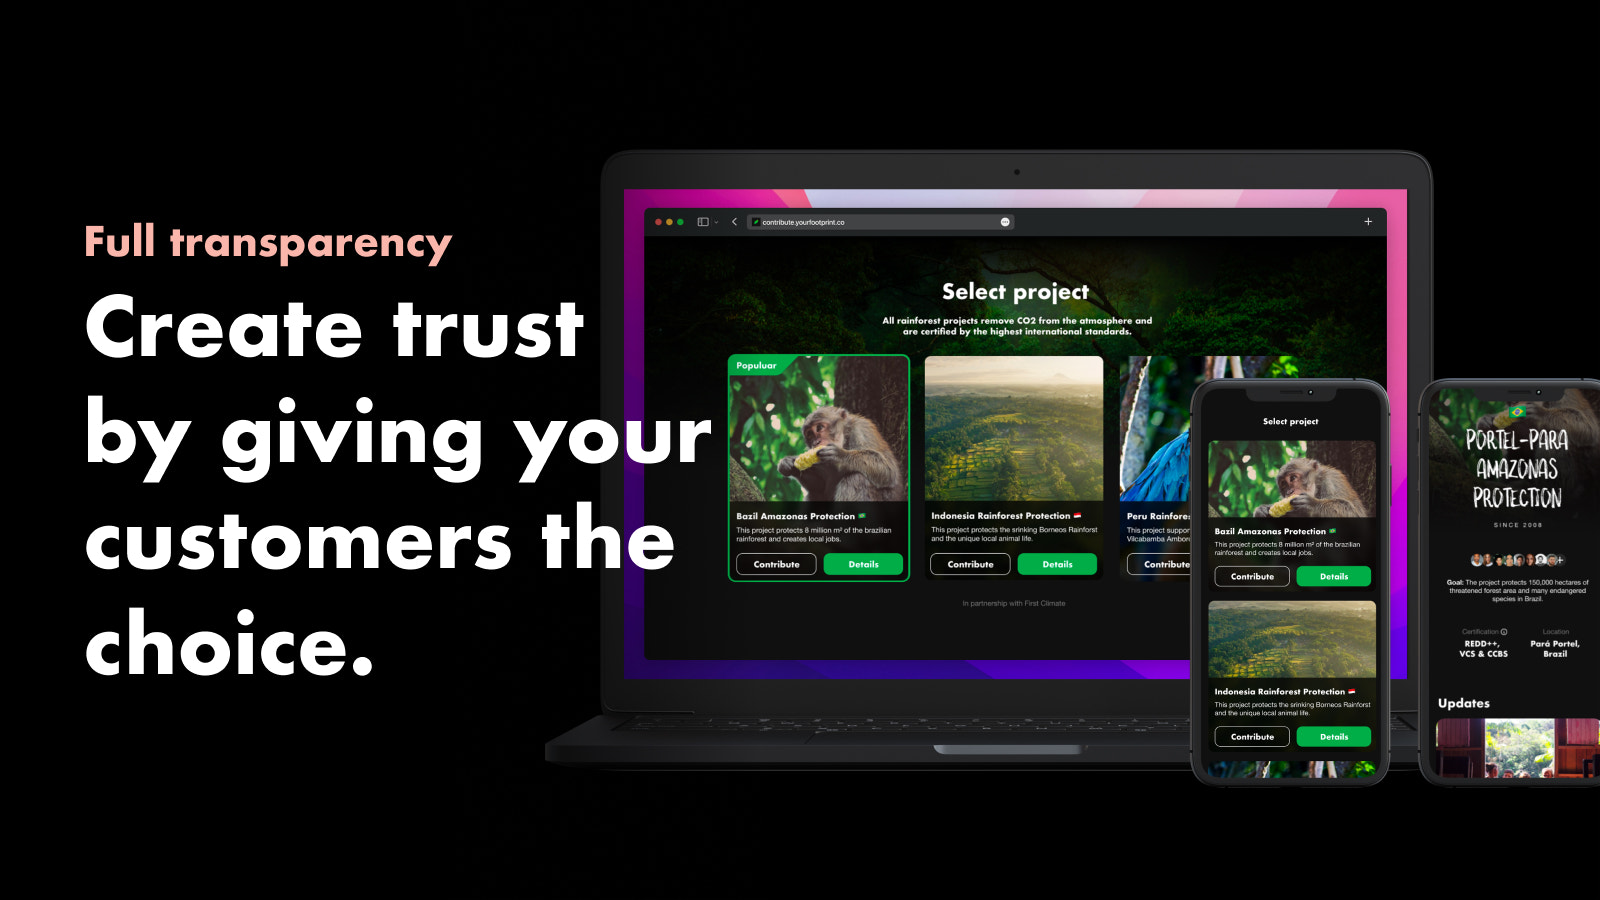 To increase trust, customers will be able choose the project.